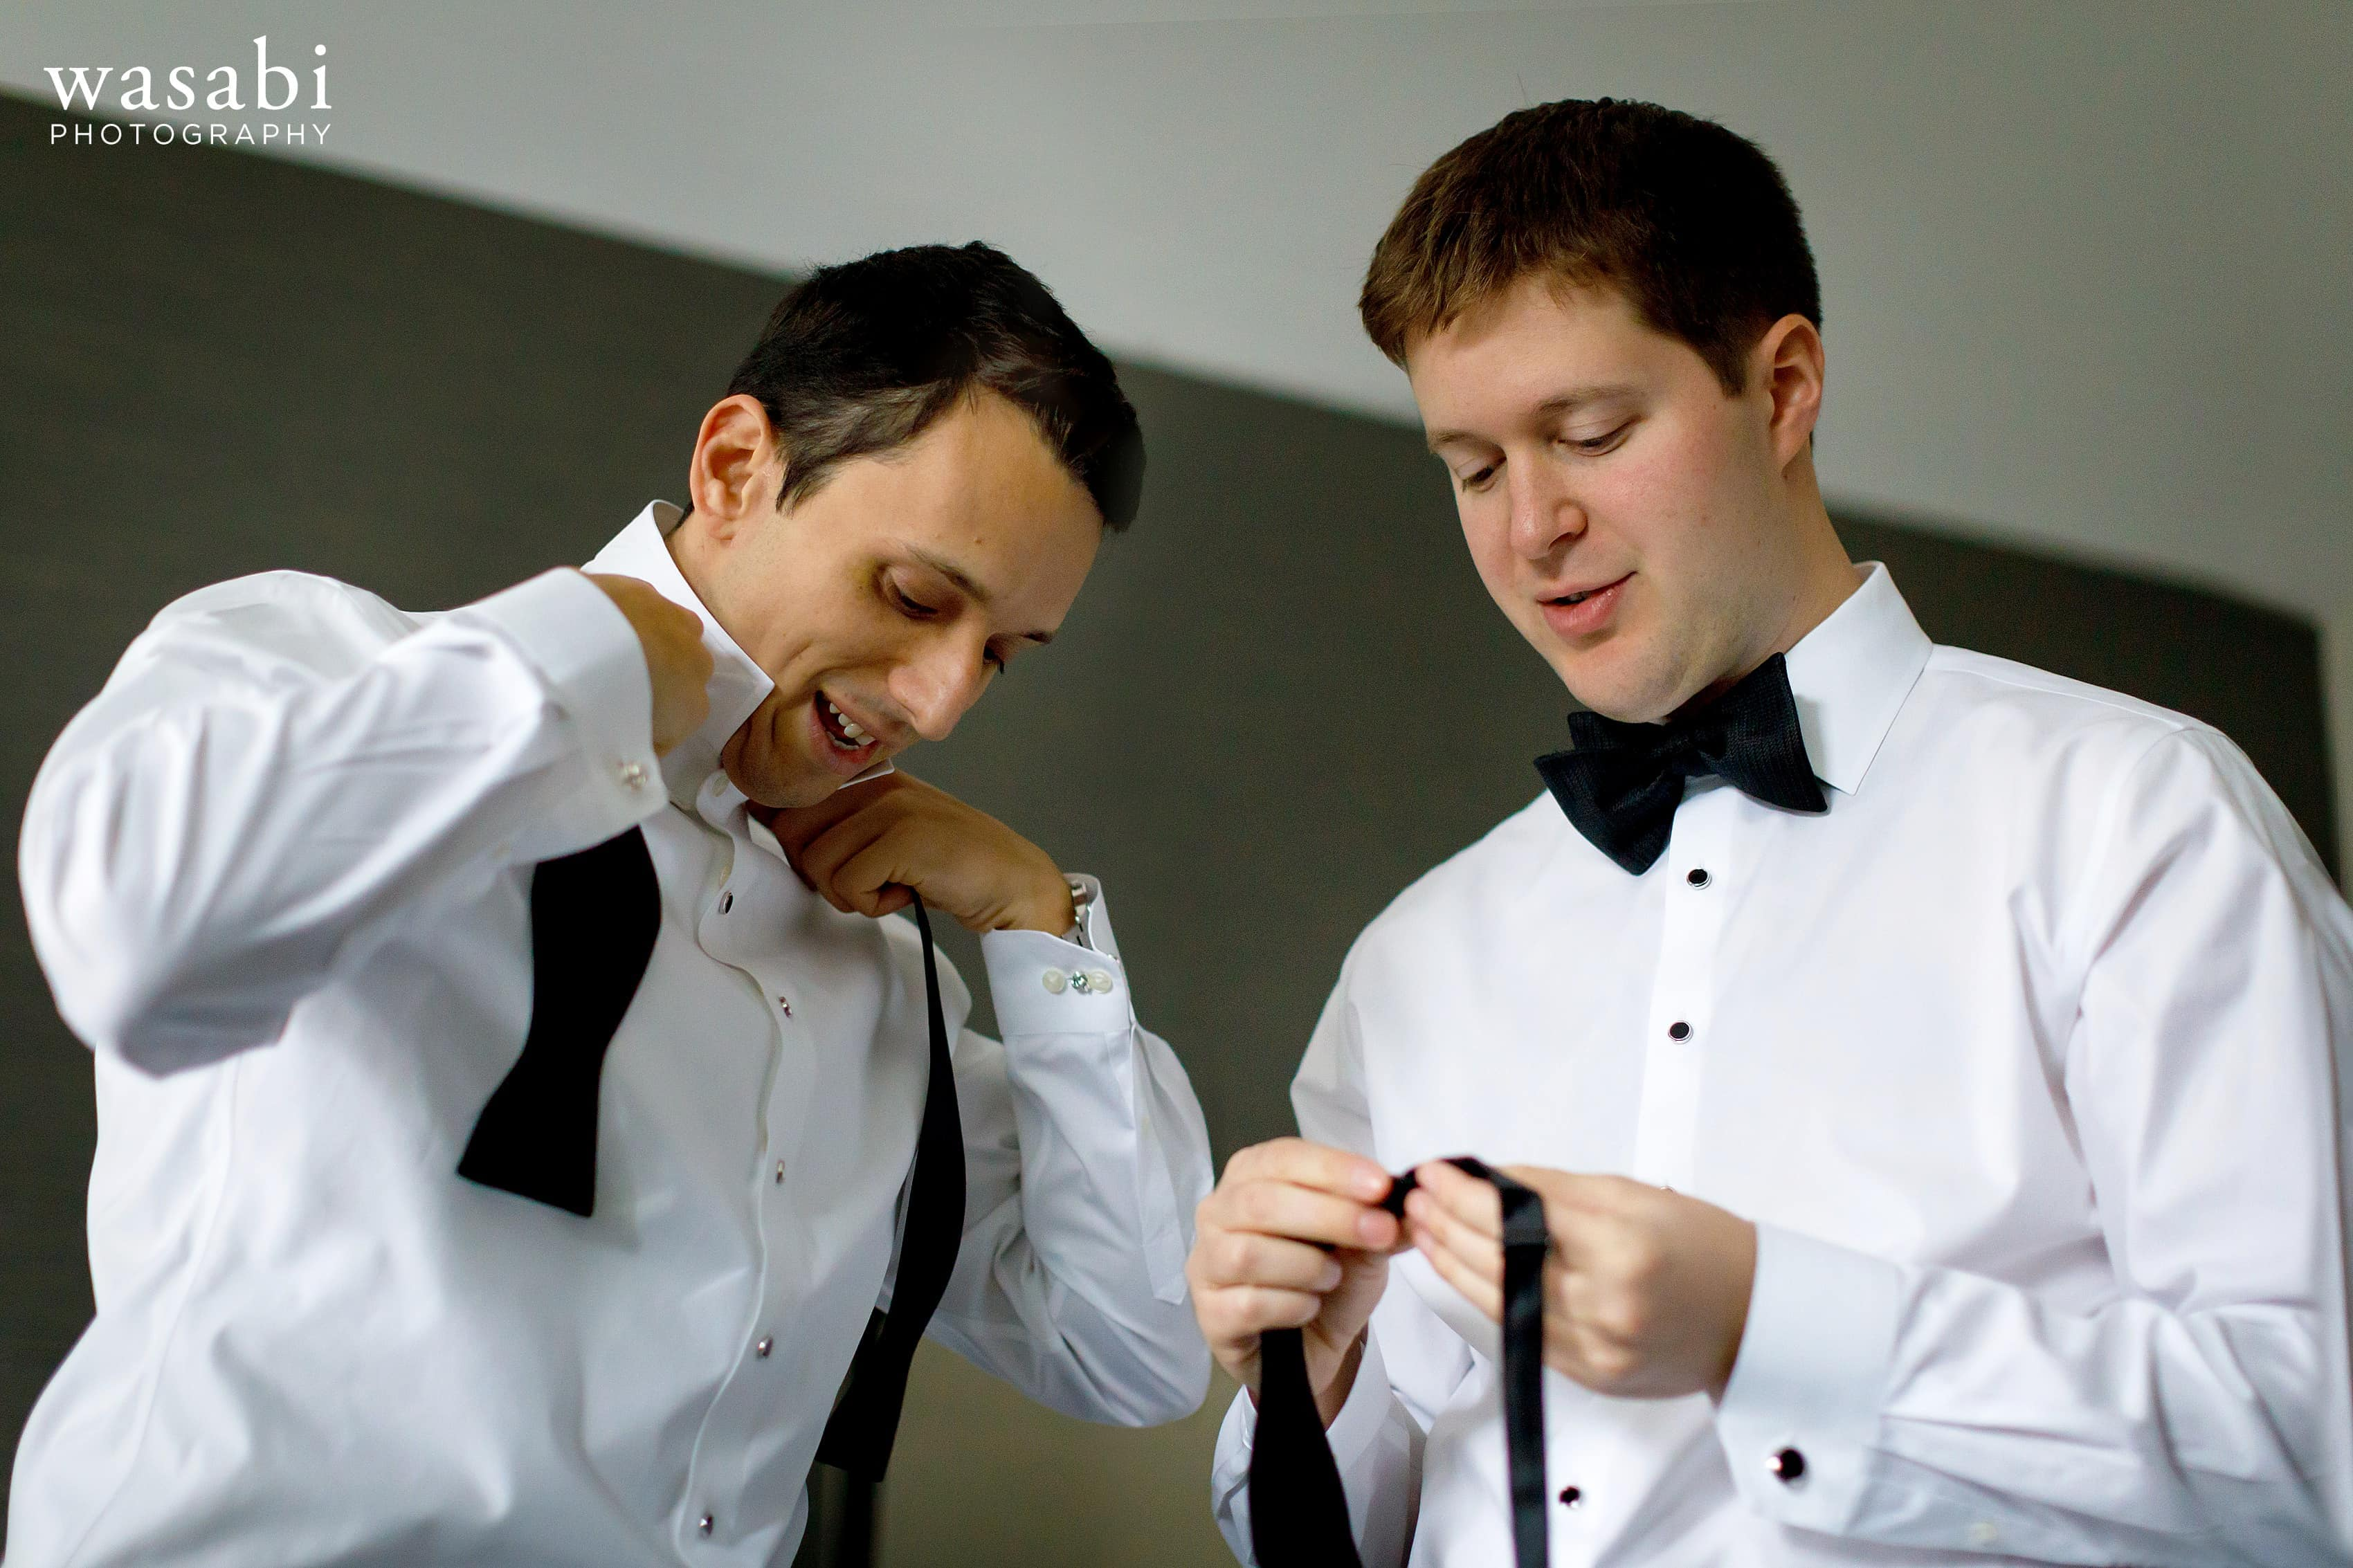 Groom and best man put on their ties while getting ready for wedding at InterContinental Chicago Magnificent Mile Hotel